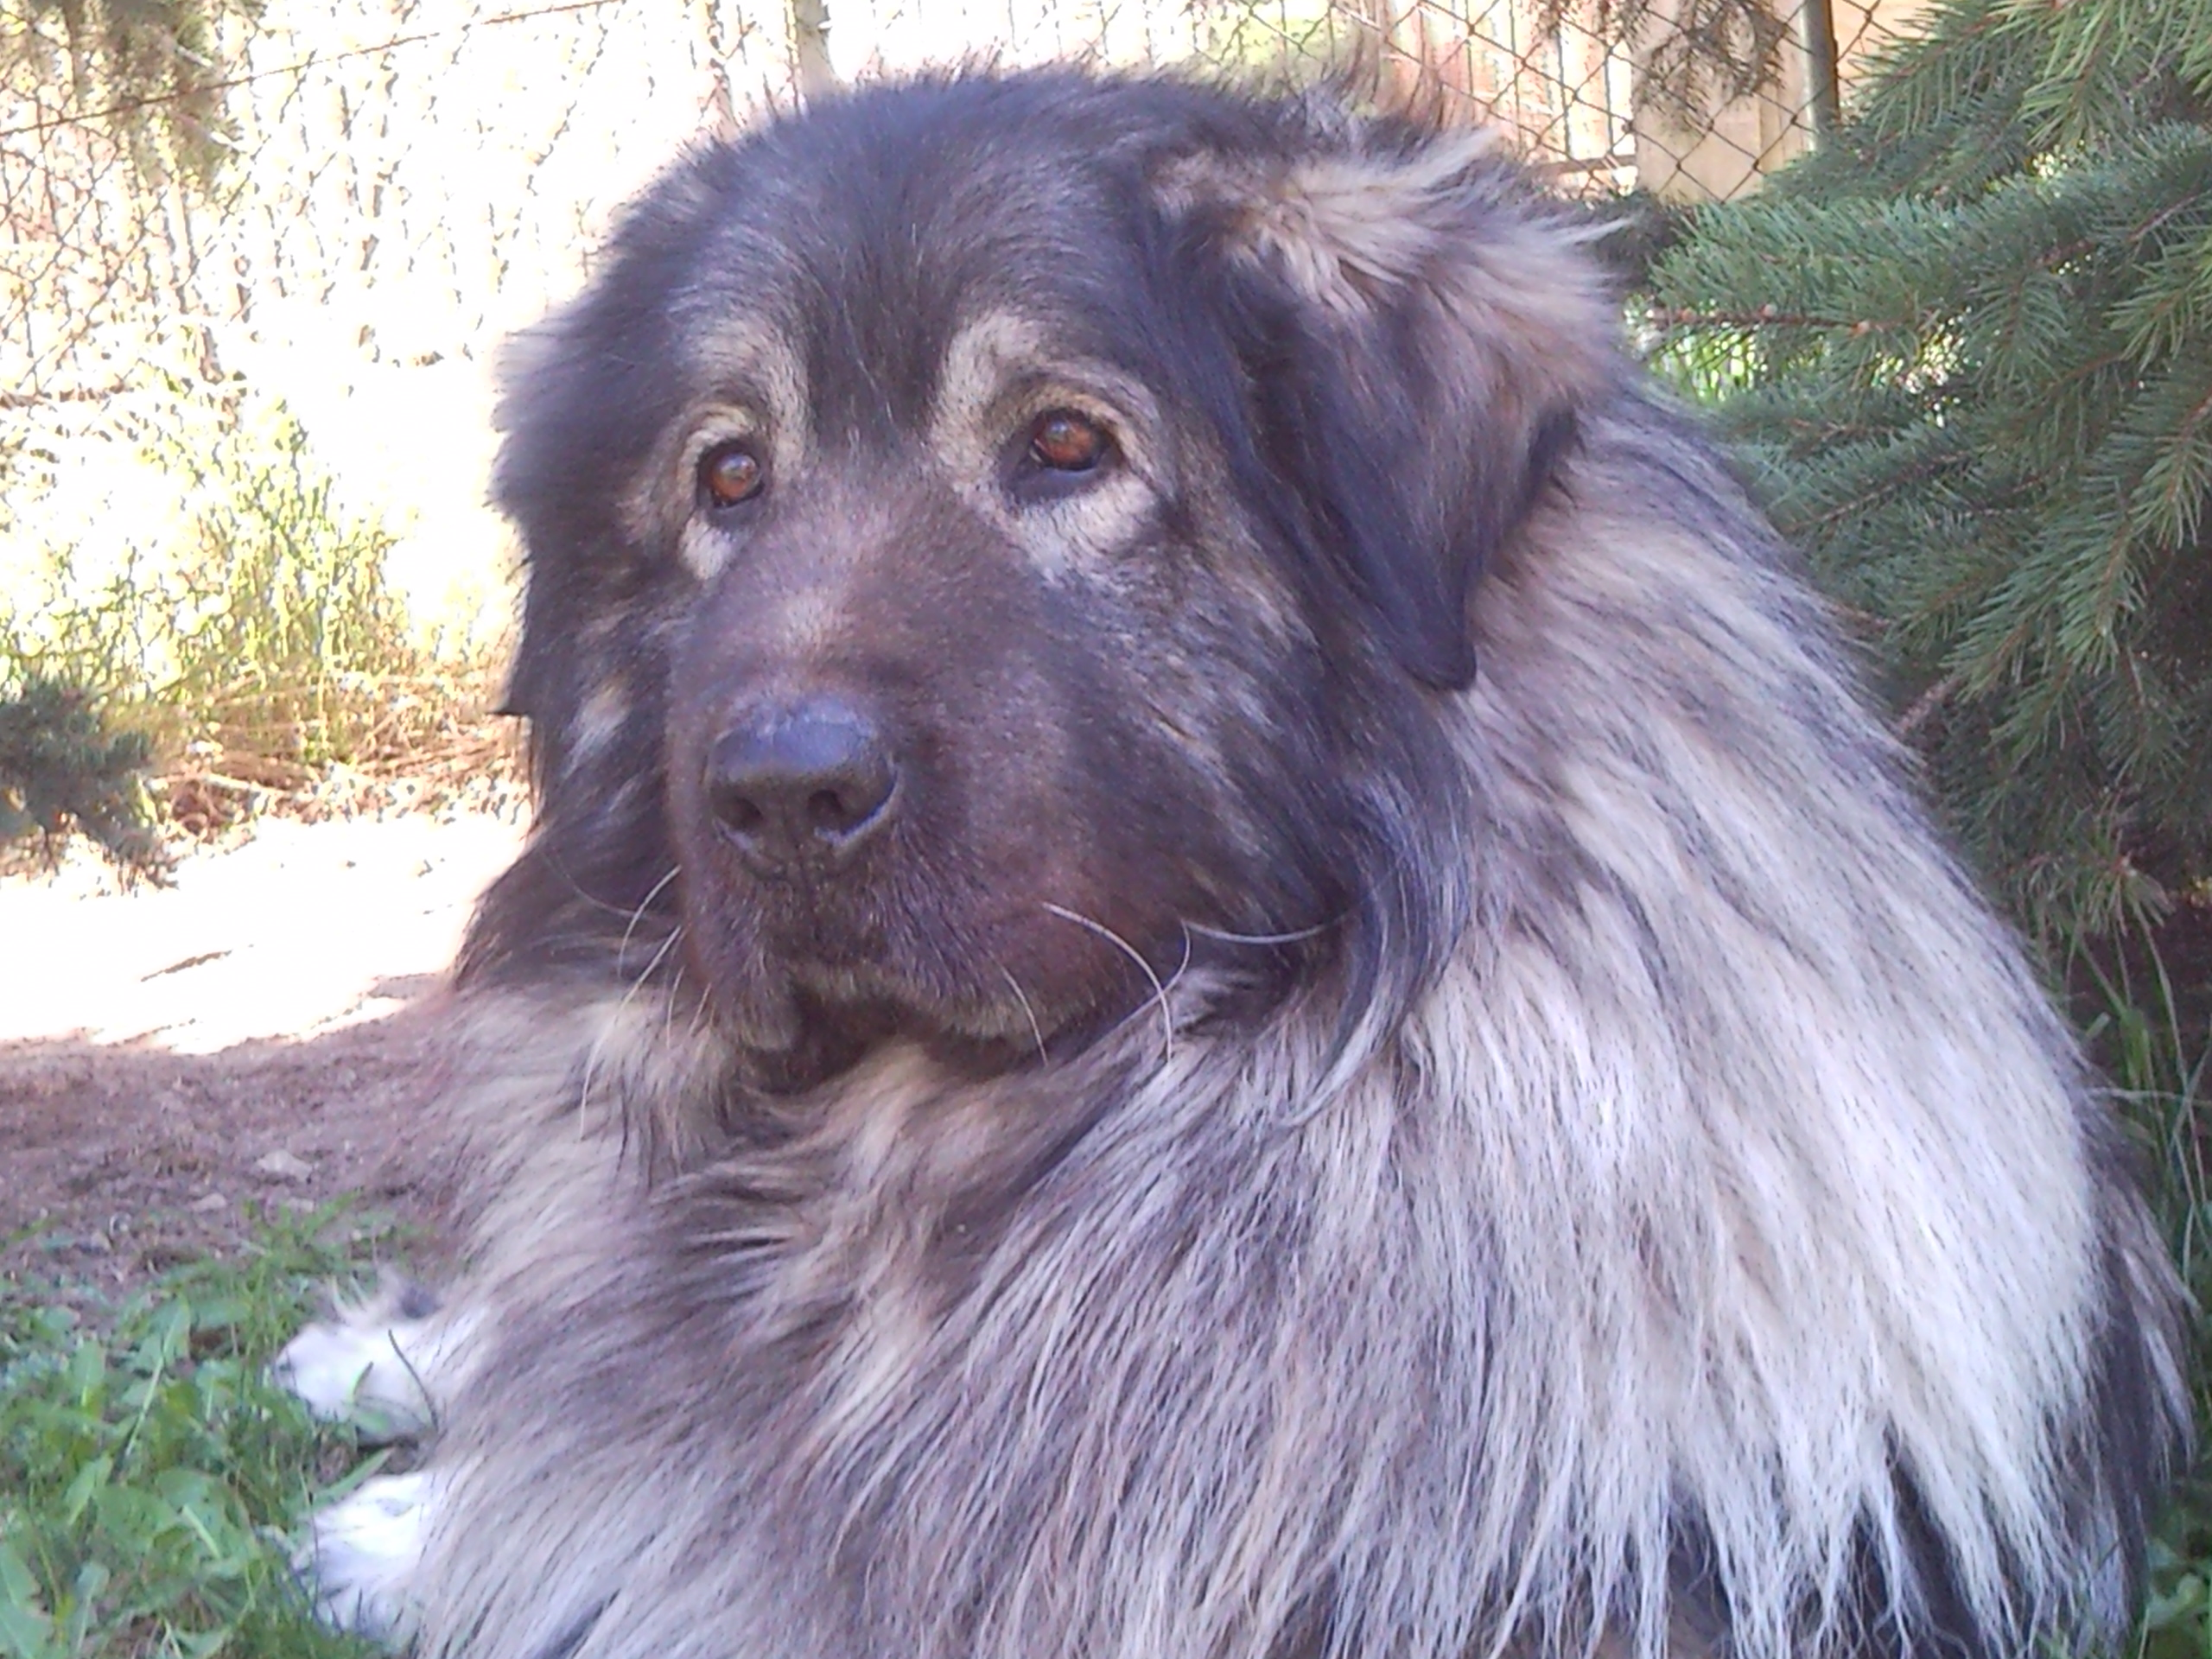 Sarplaninac male - Goran 6 years old